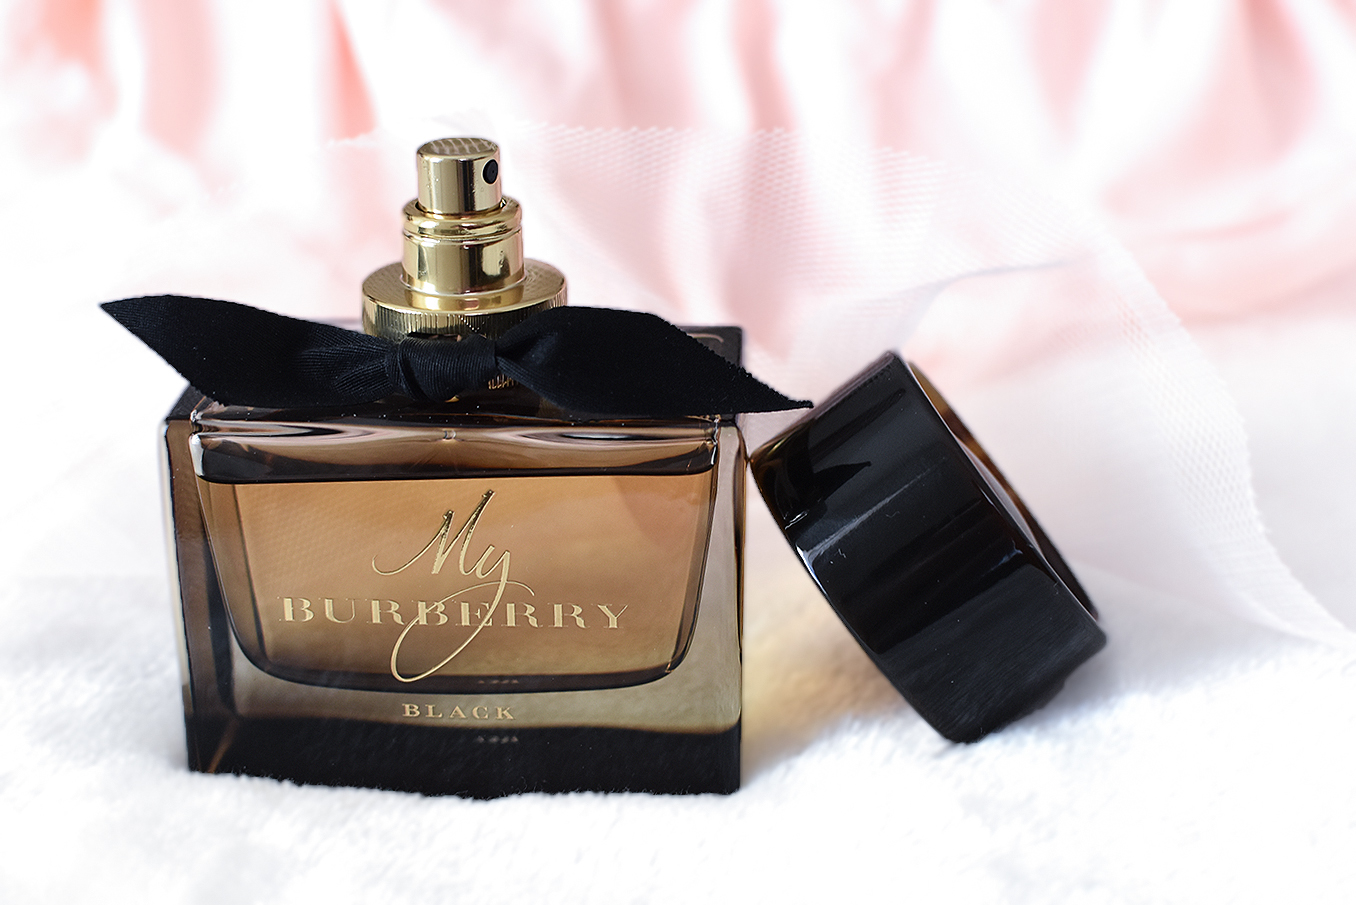 Burberry fragrance review